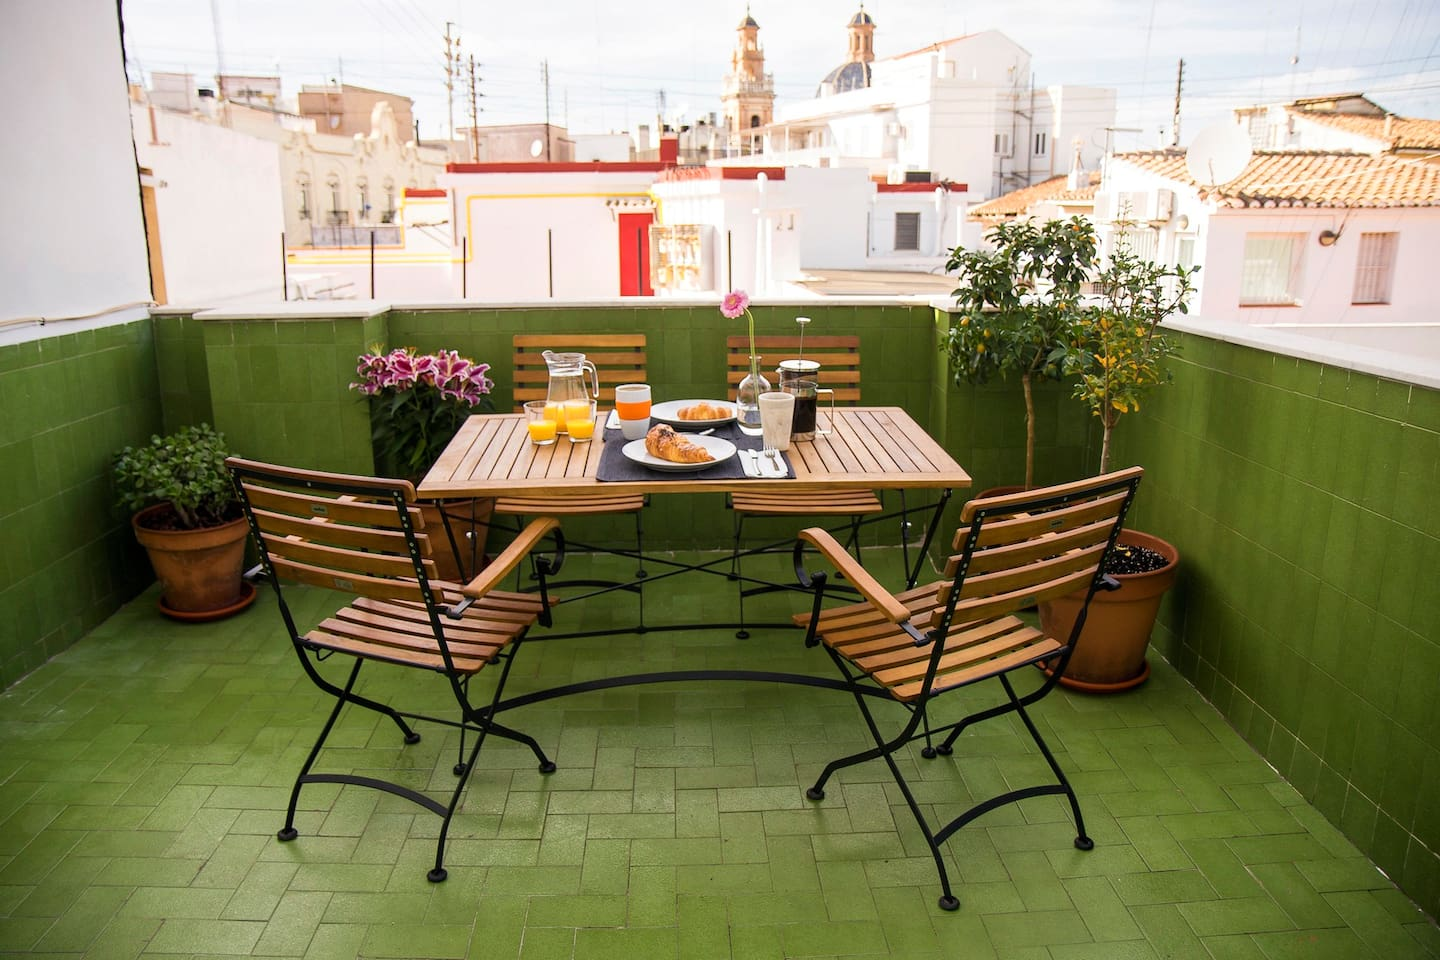 With Valencia's famously sunny weather, you'll be on the terrace a lot!